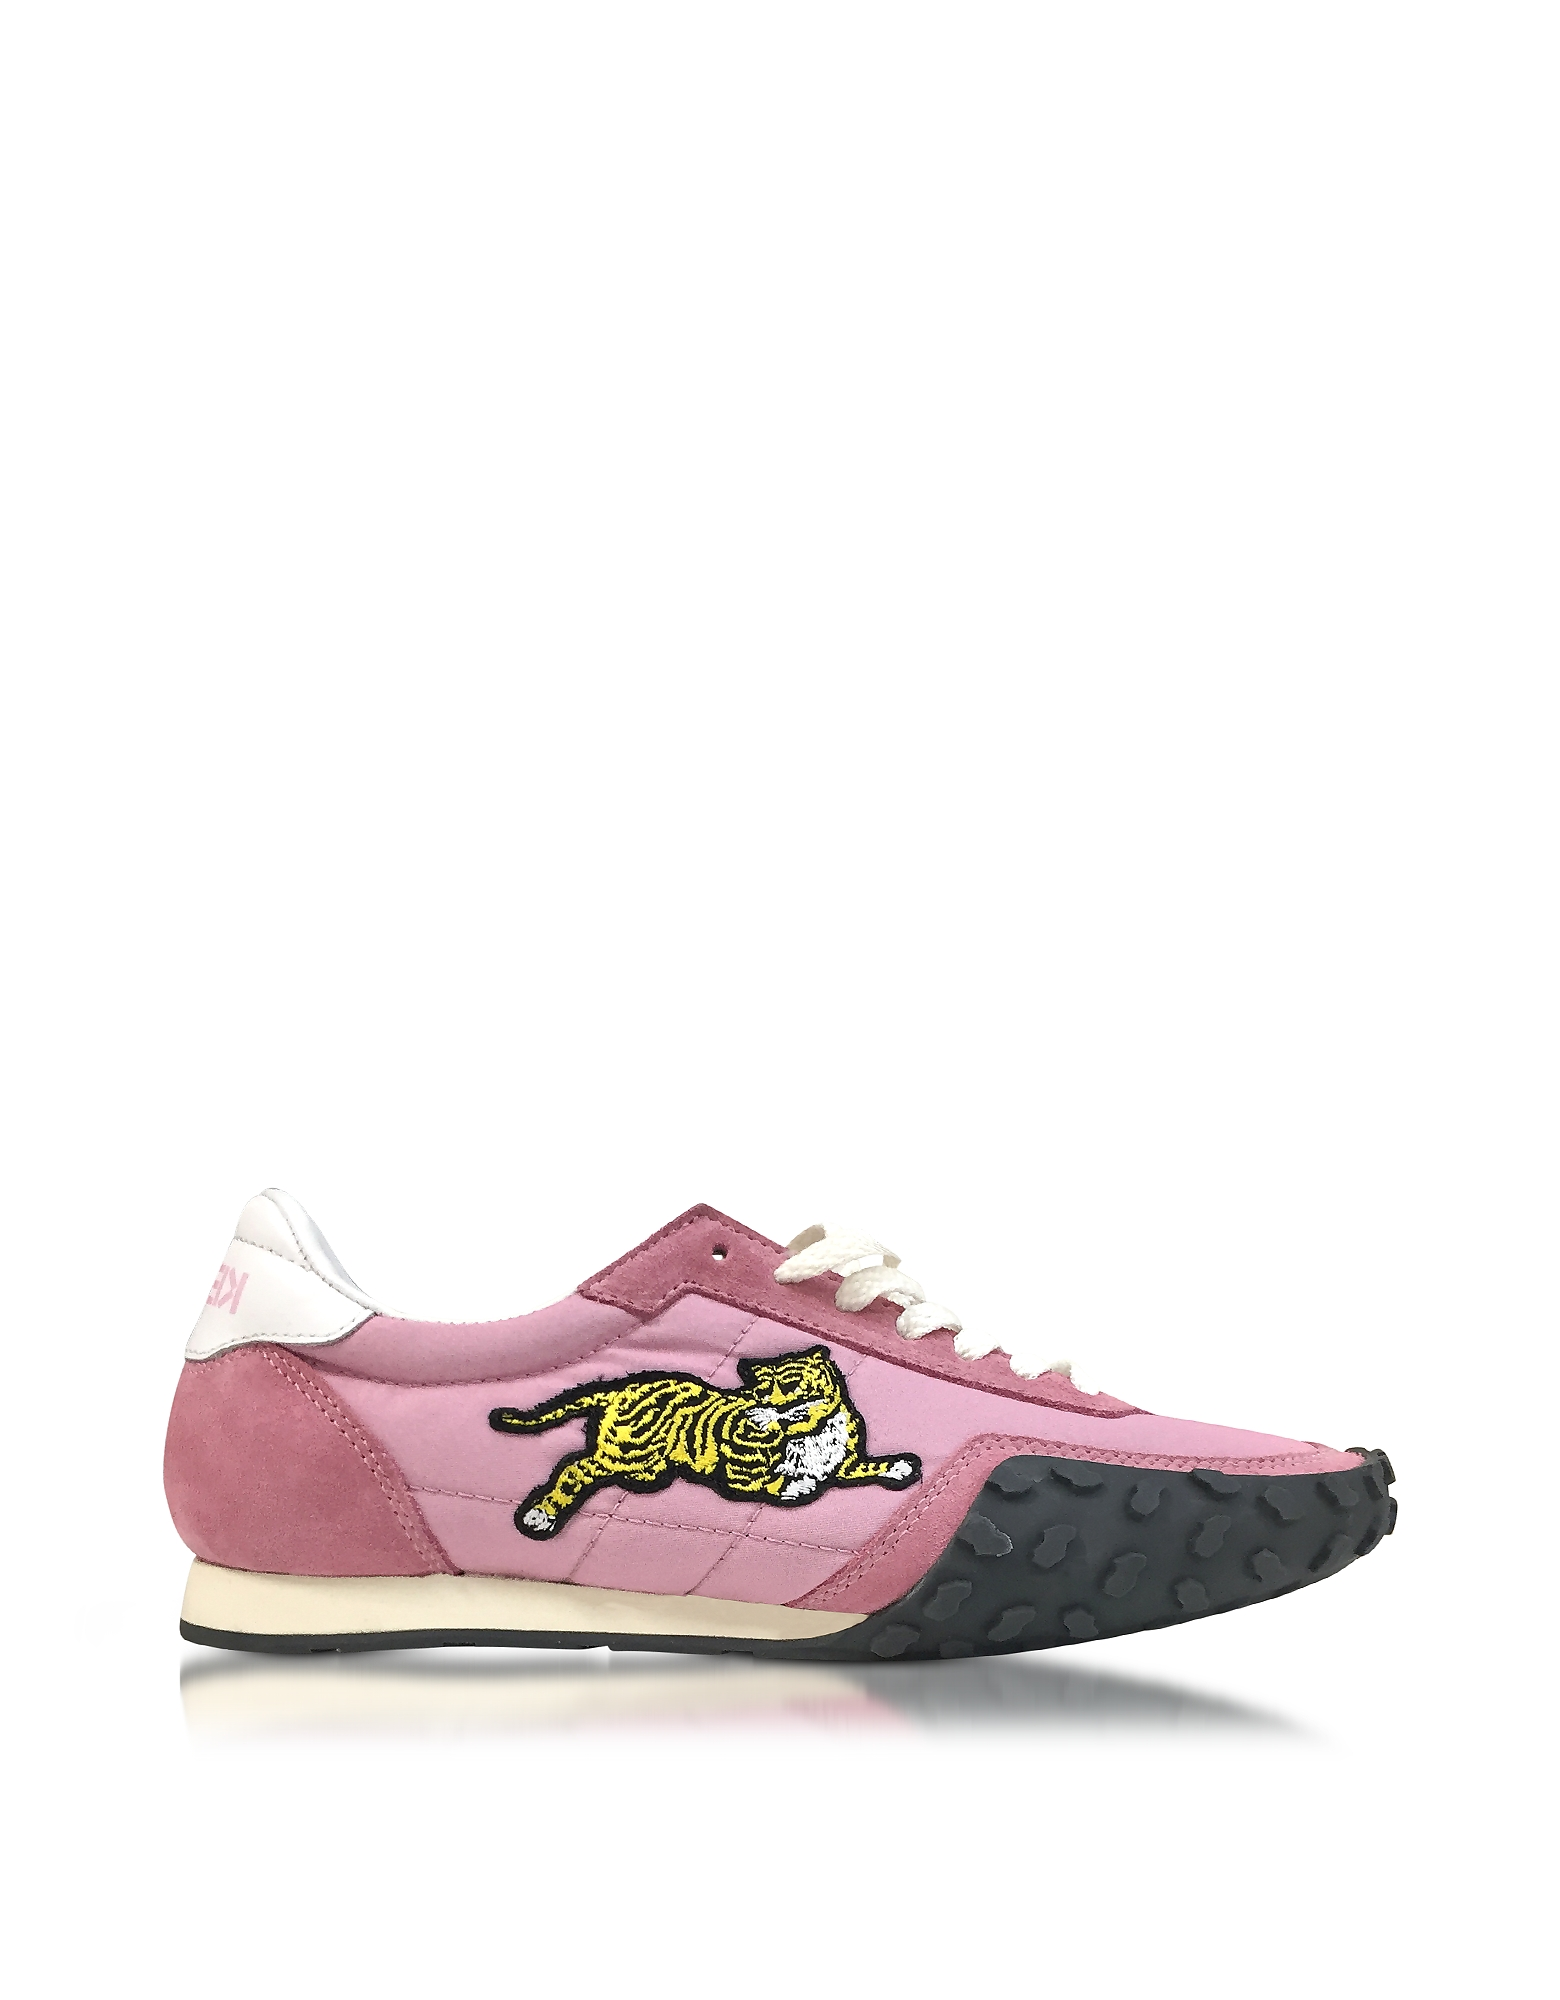 Kenzo Shoes, Flamingo Pink Nylon and Suede Kenzo Move Women's Sneakers